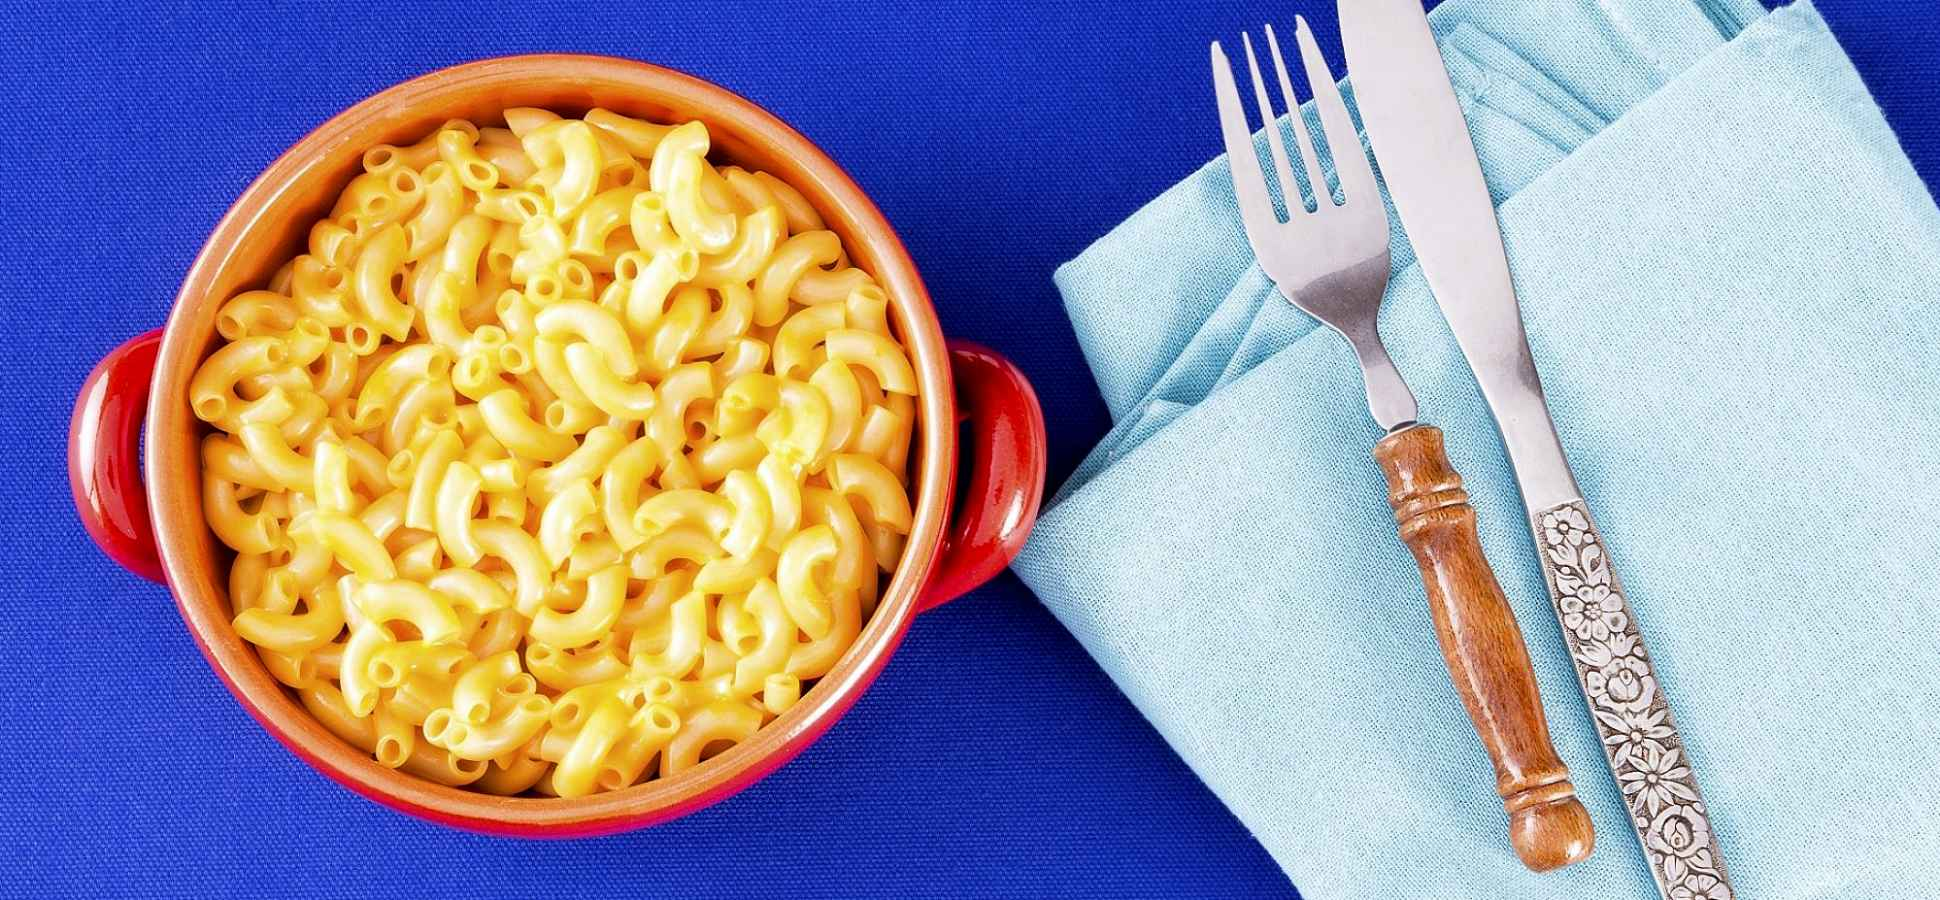 How Kraft Used Psychology to Make Its Mac and Cheese Go Viral